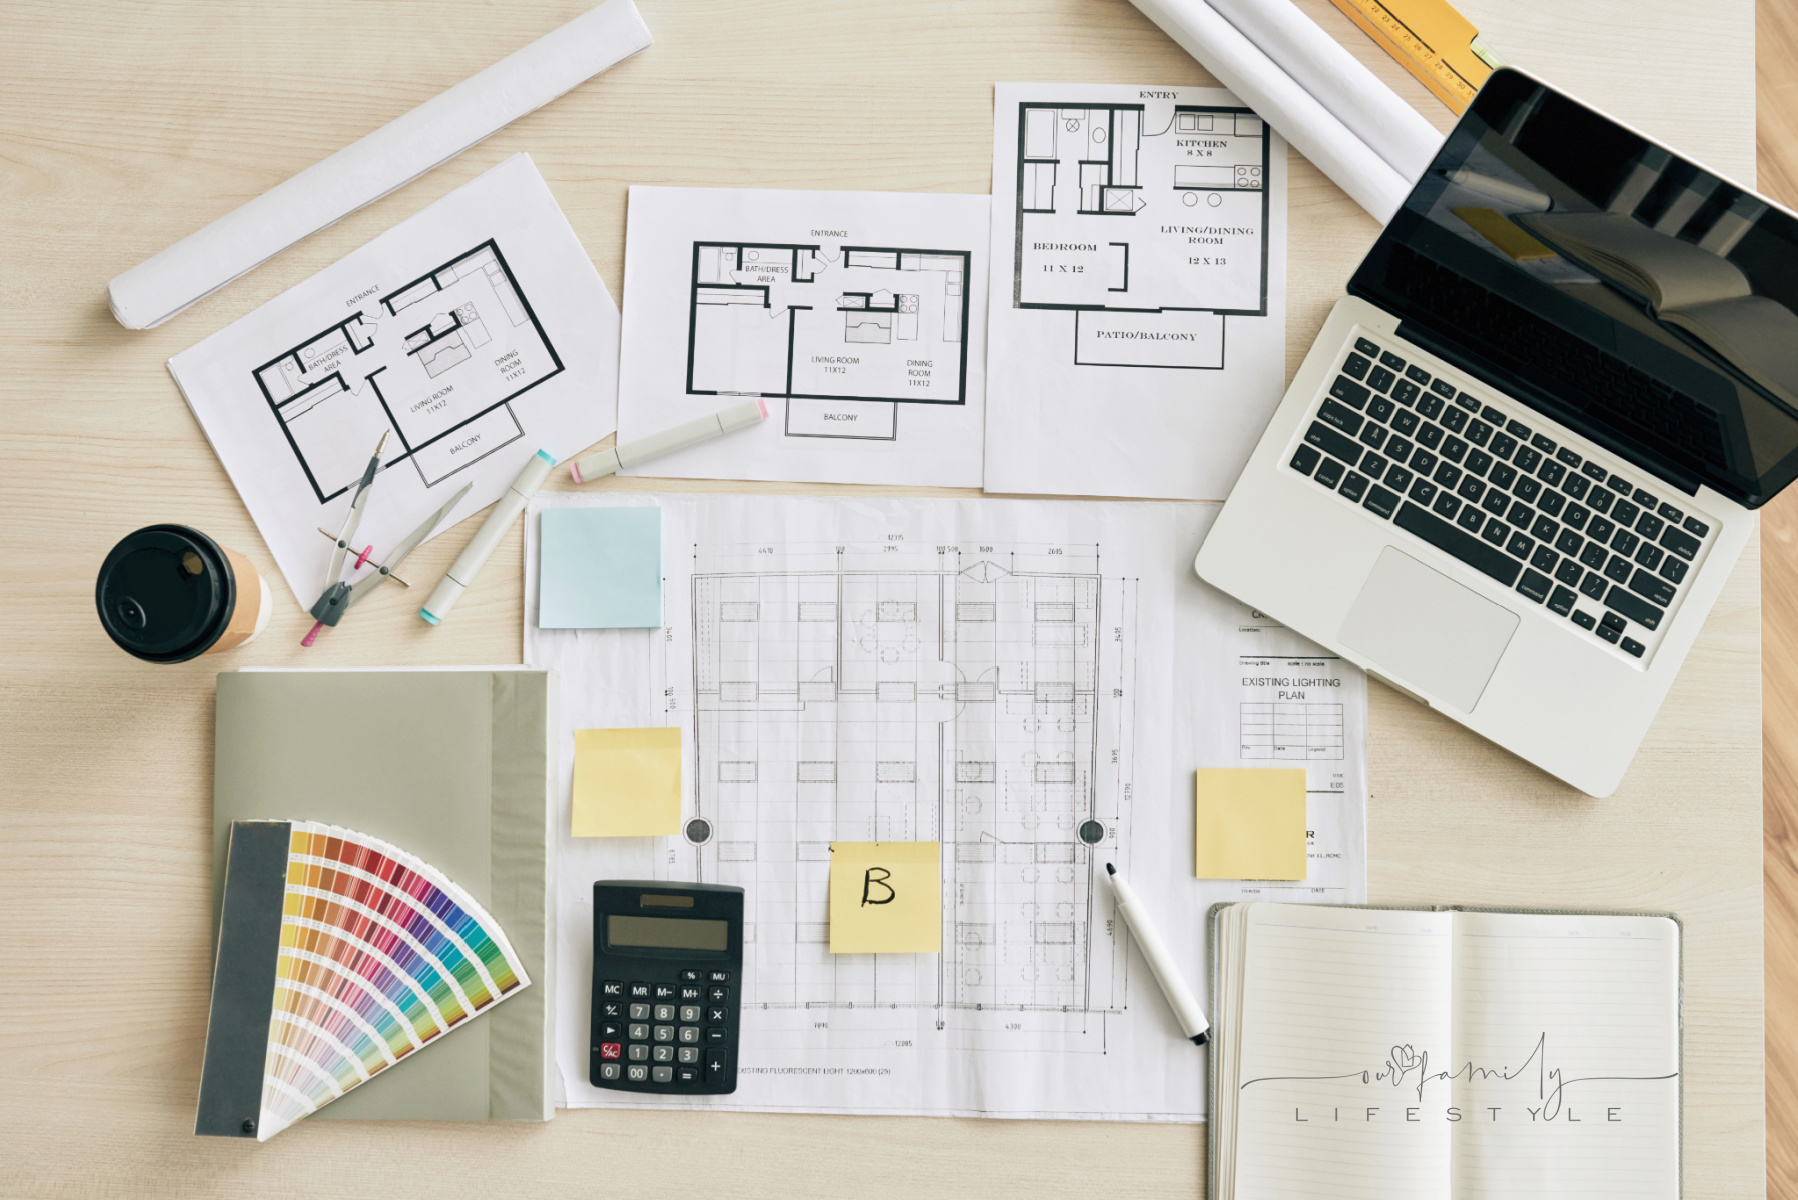 Plans and blueprints on table of interior designer, view from above